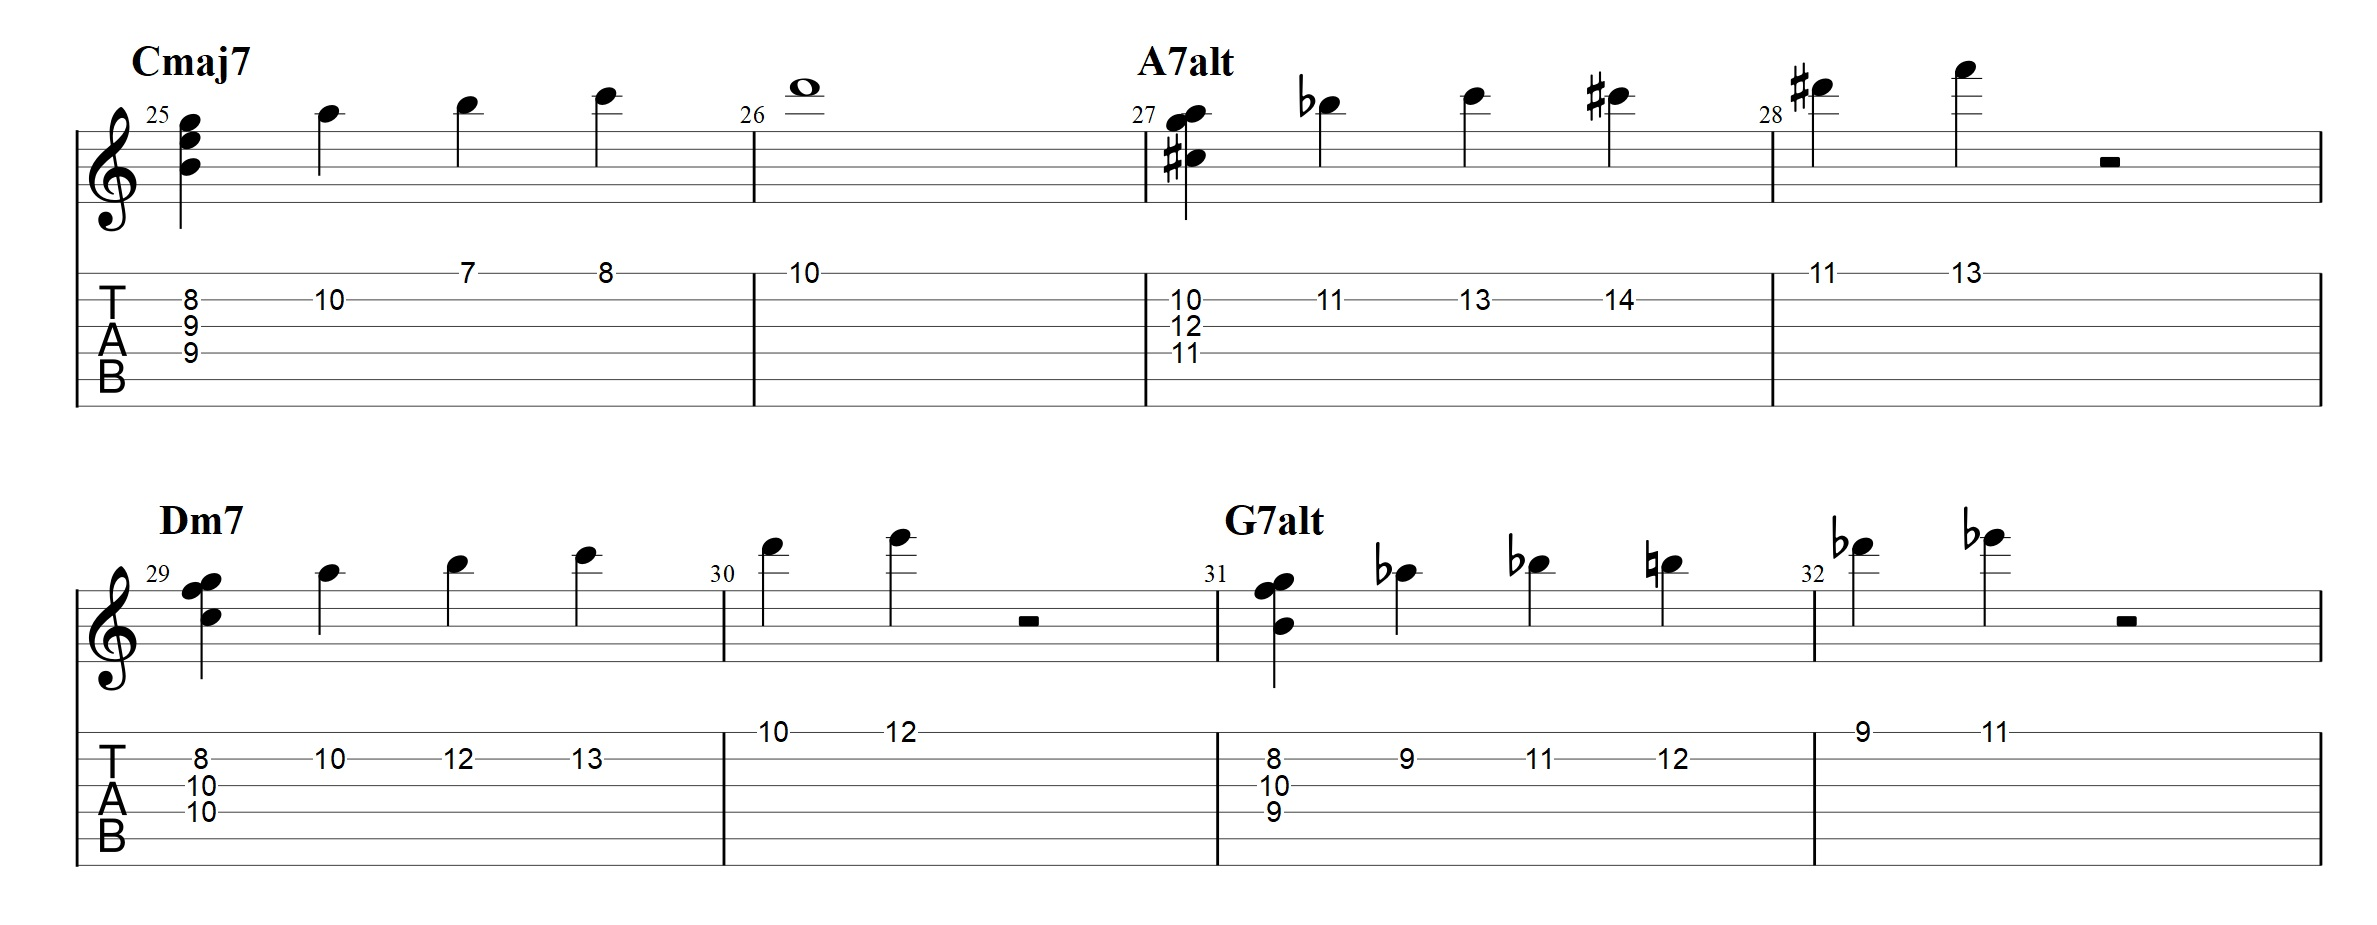 Chord voicings archives jens larsen and this could be turned into this example hexwebz Choice Image